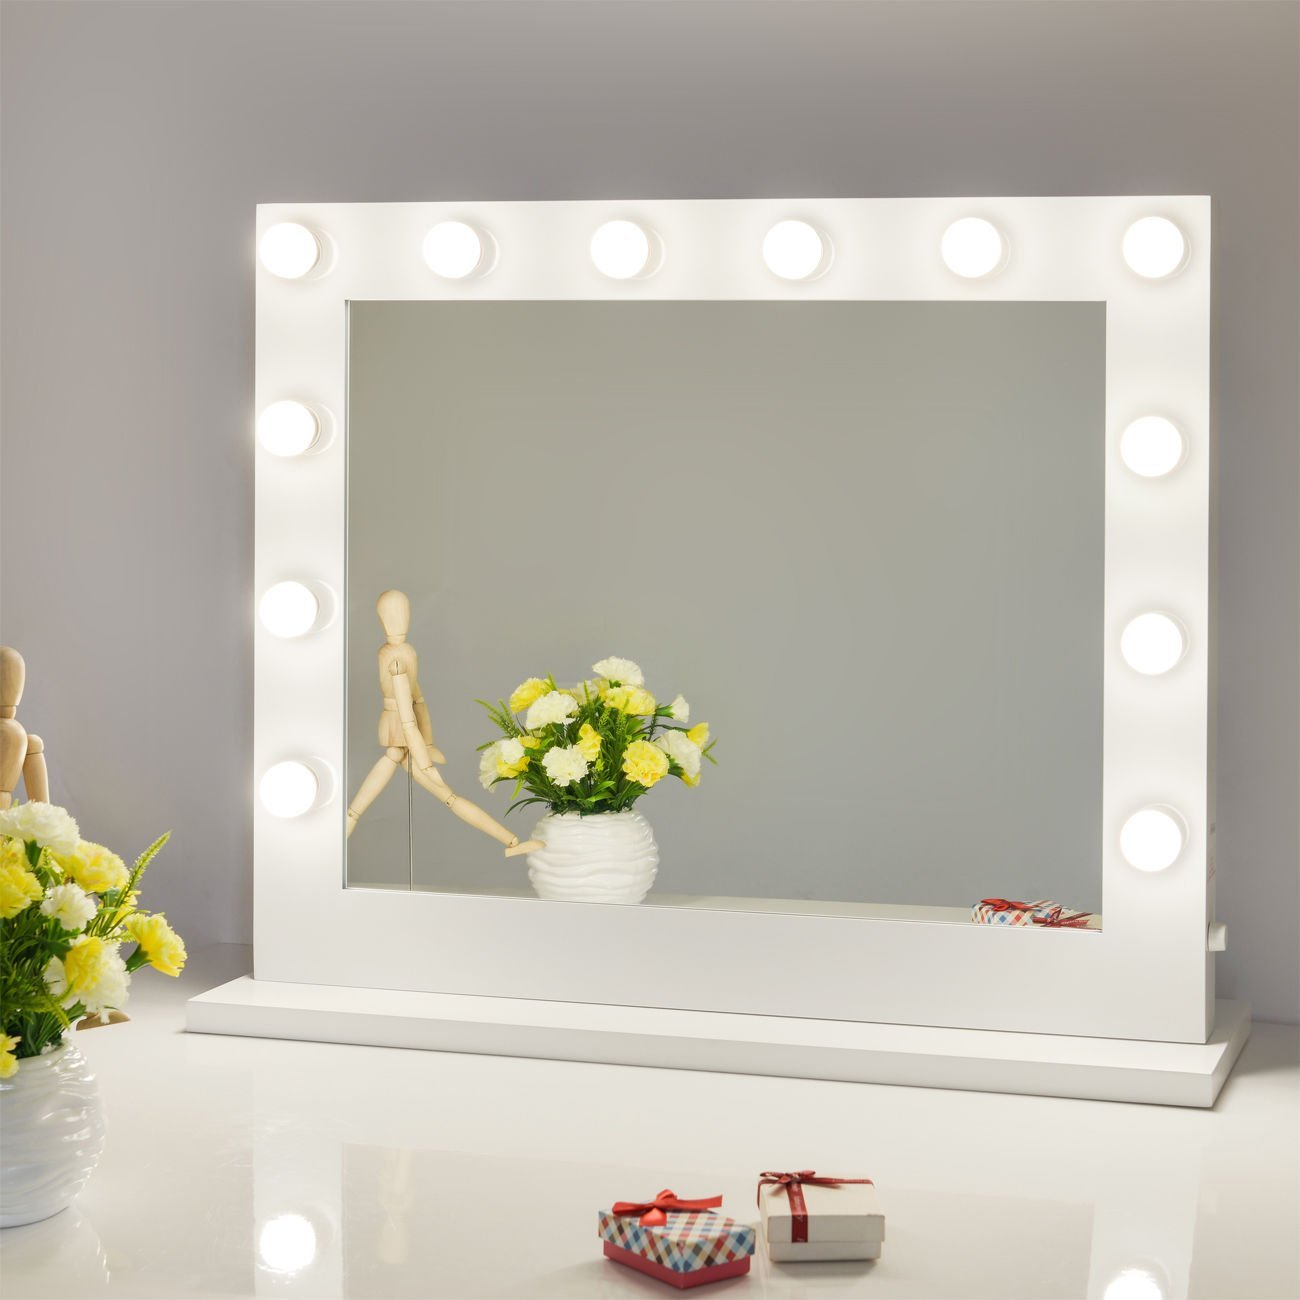 vanity mirrors amazon.com: chende white hollywood lighted makeup vanity mirror light,  makeup dressing table AURQNIW